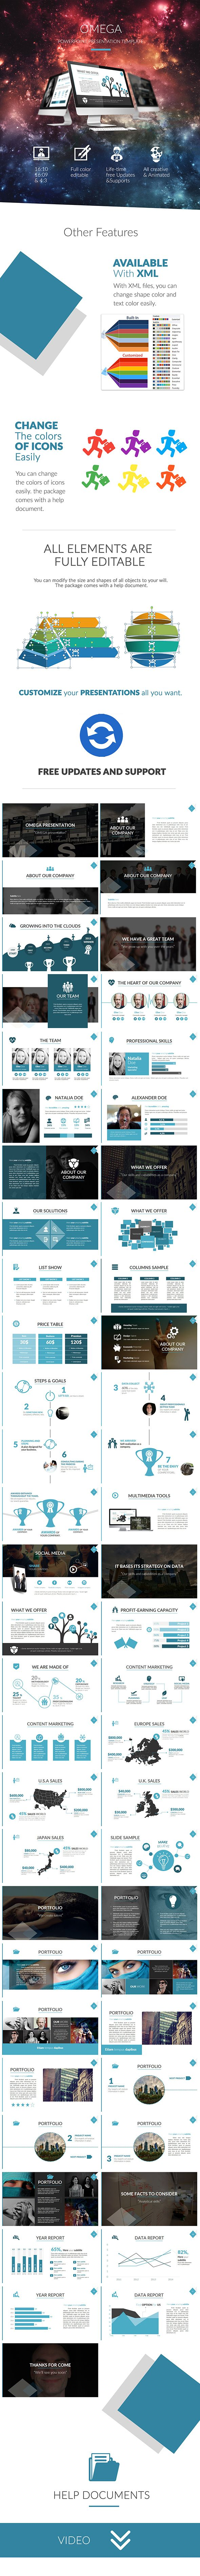 Omega Powerpoint Template (PowerPoint Templates)